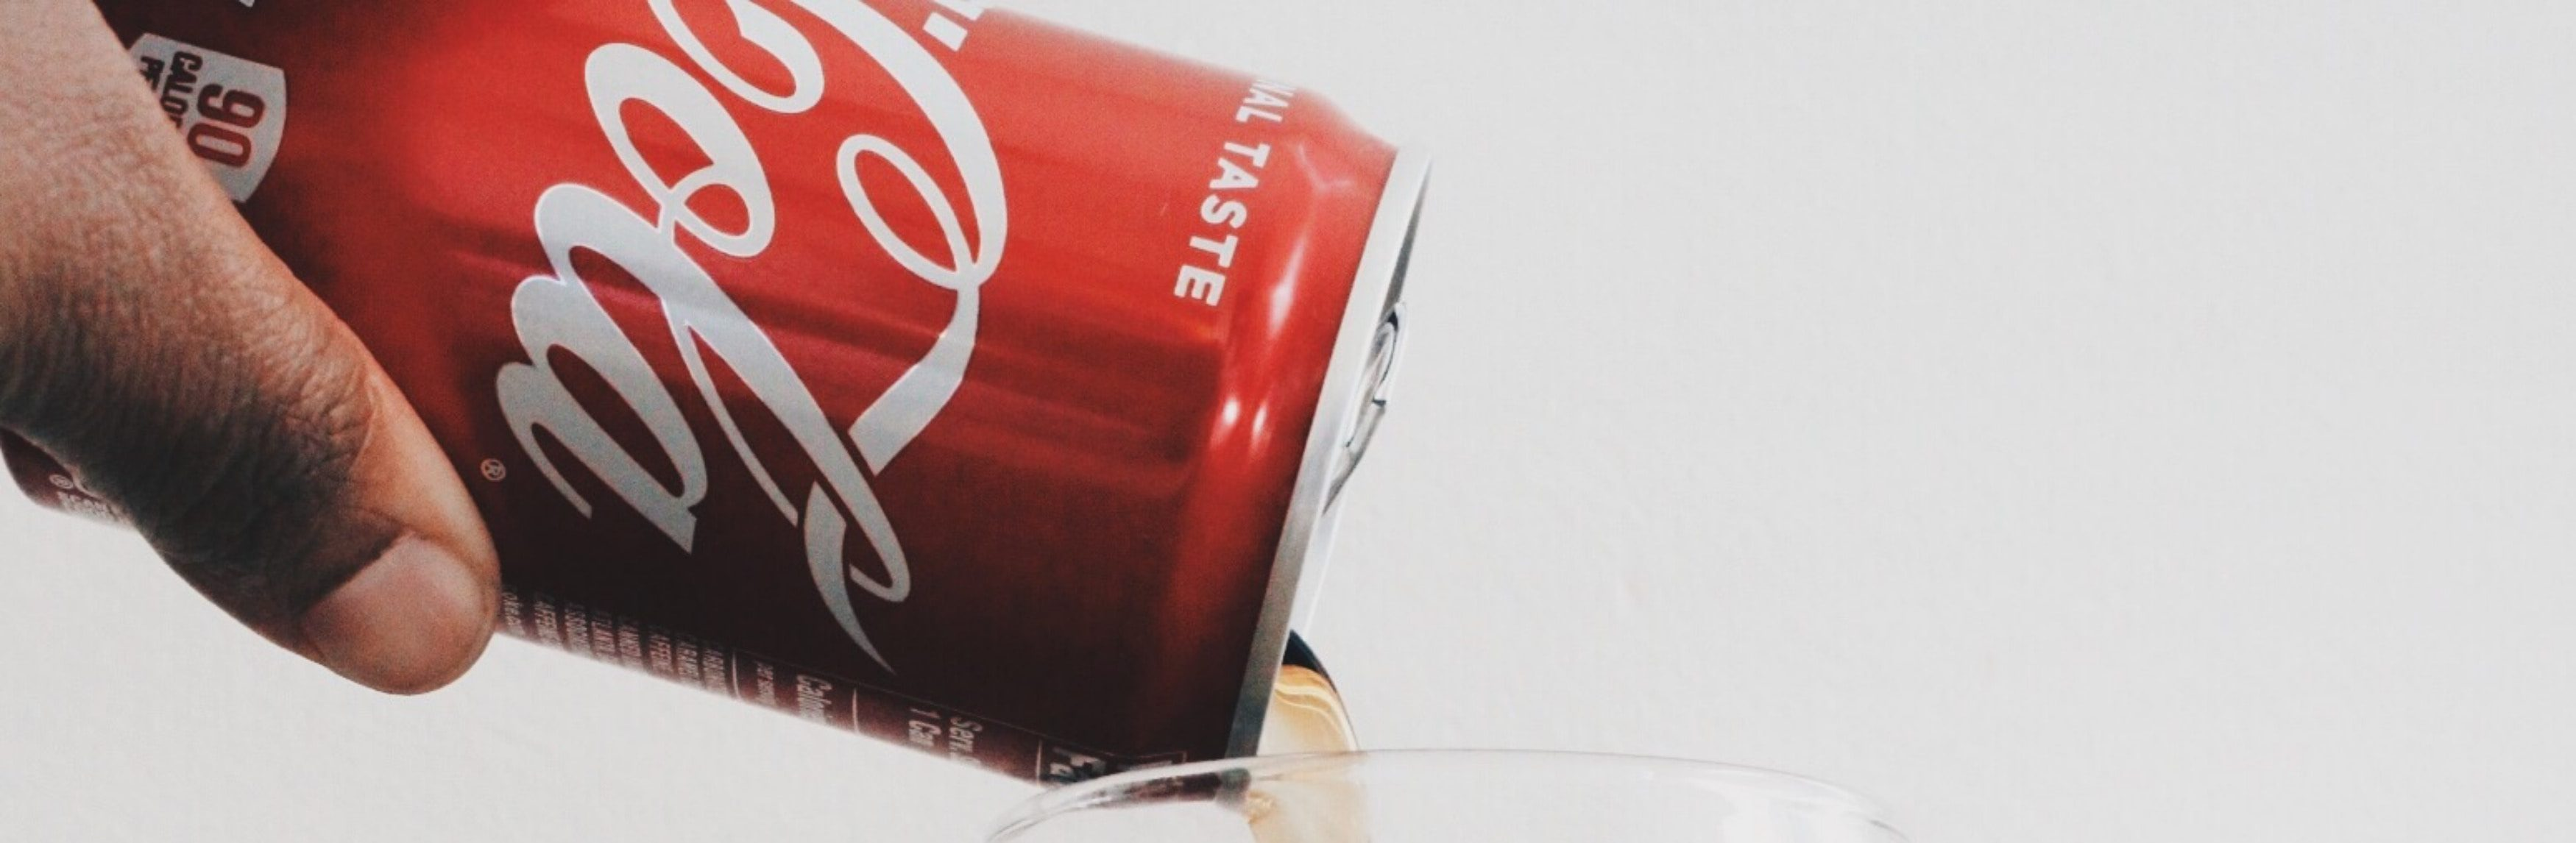 can of coke